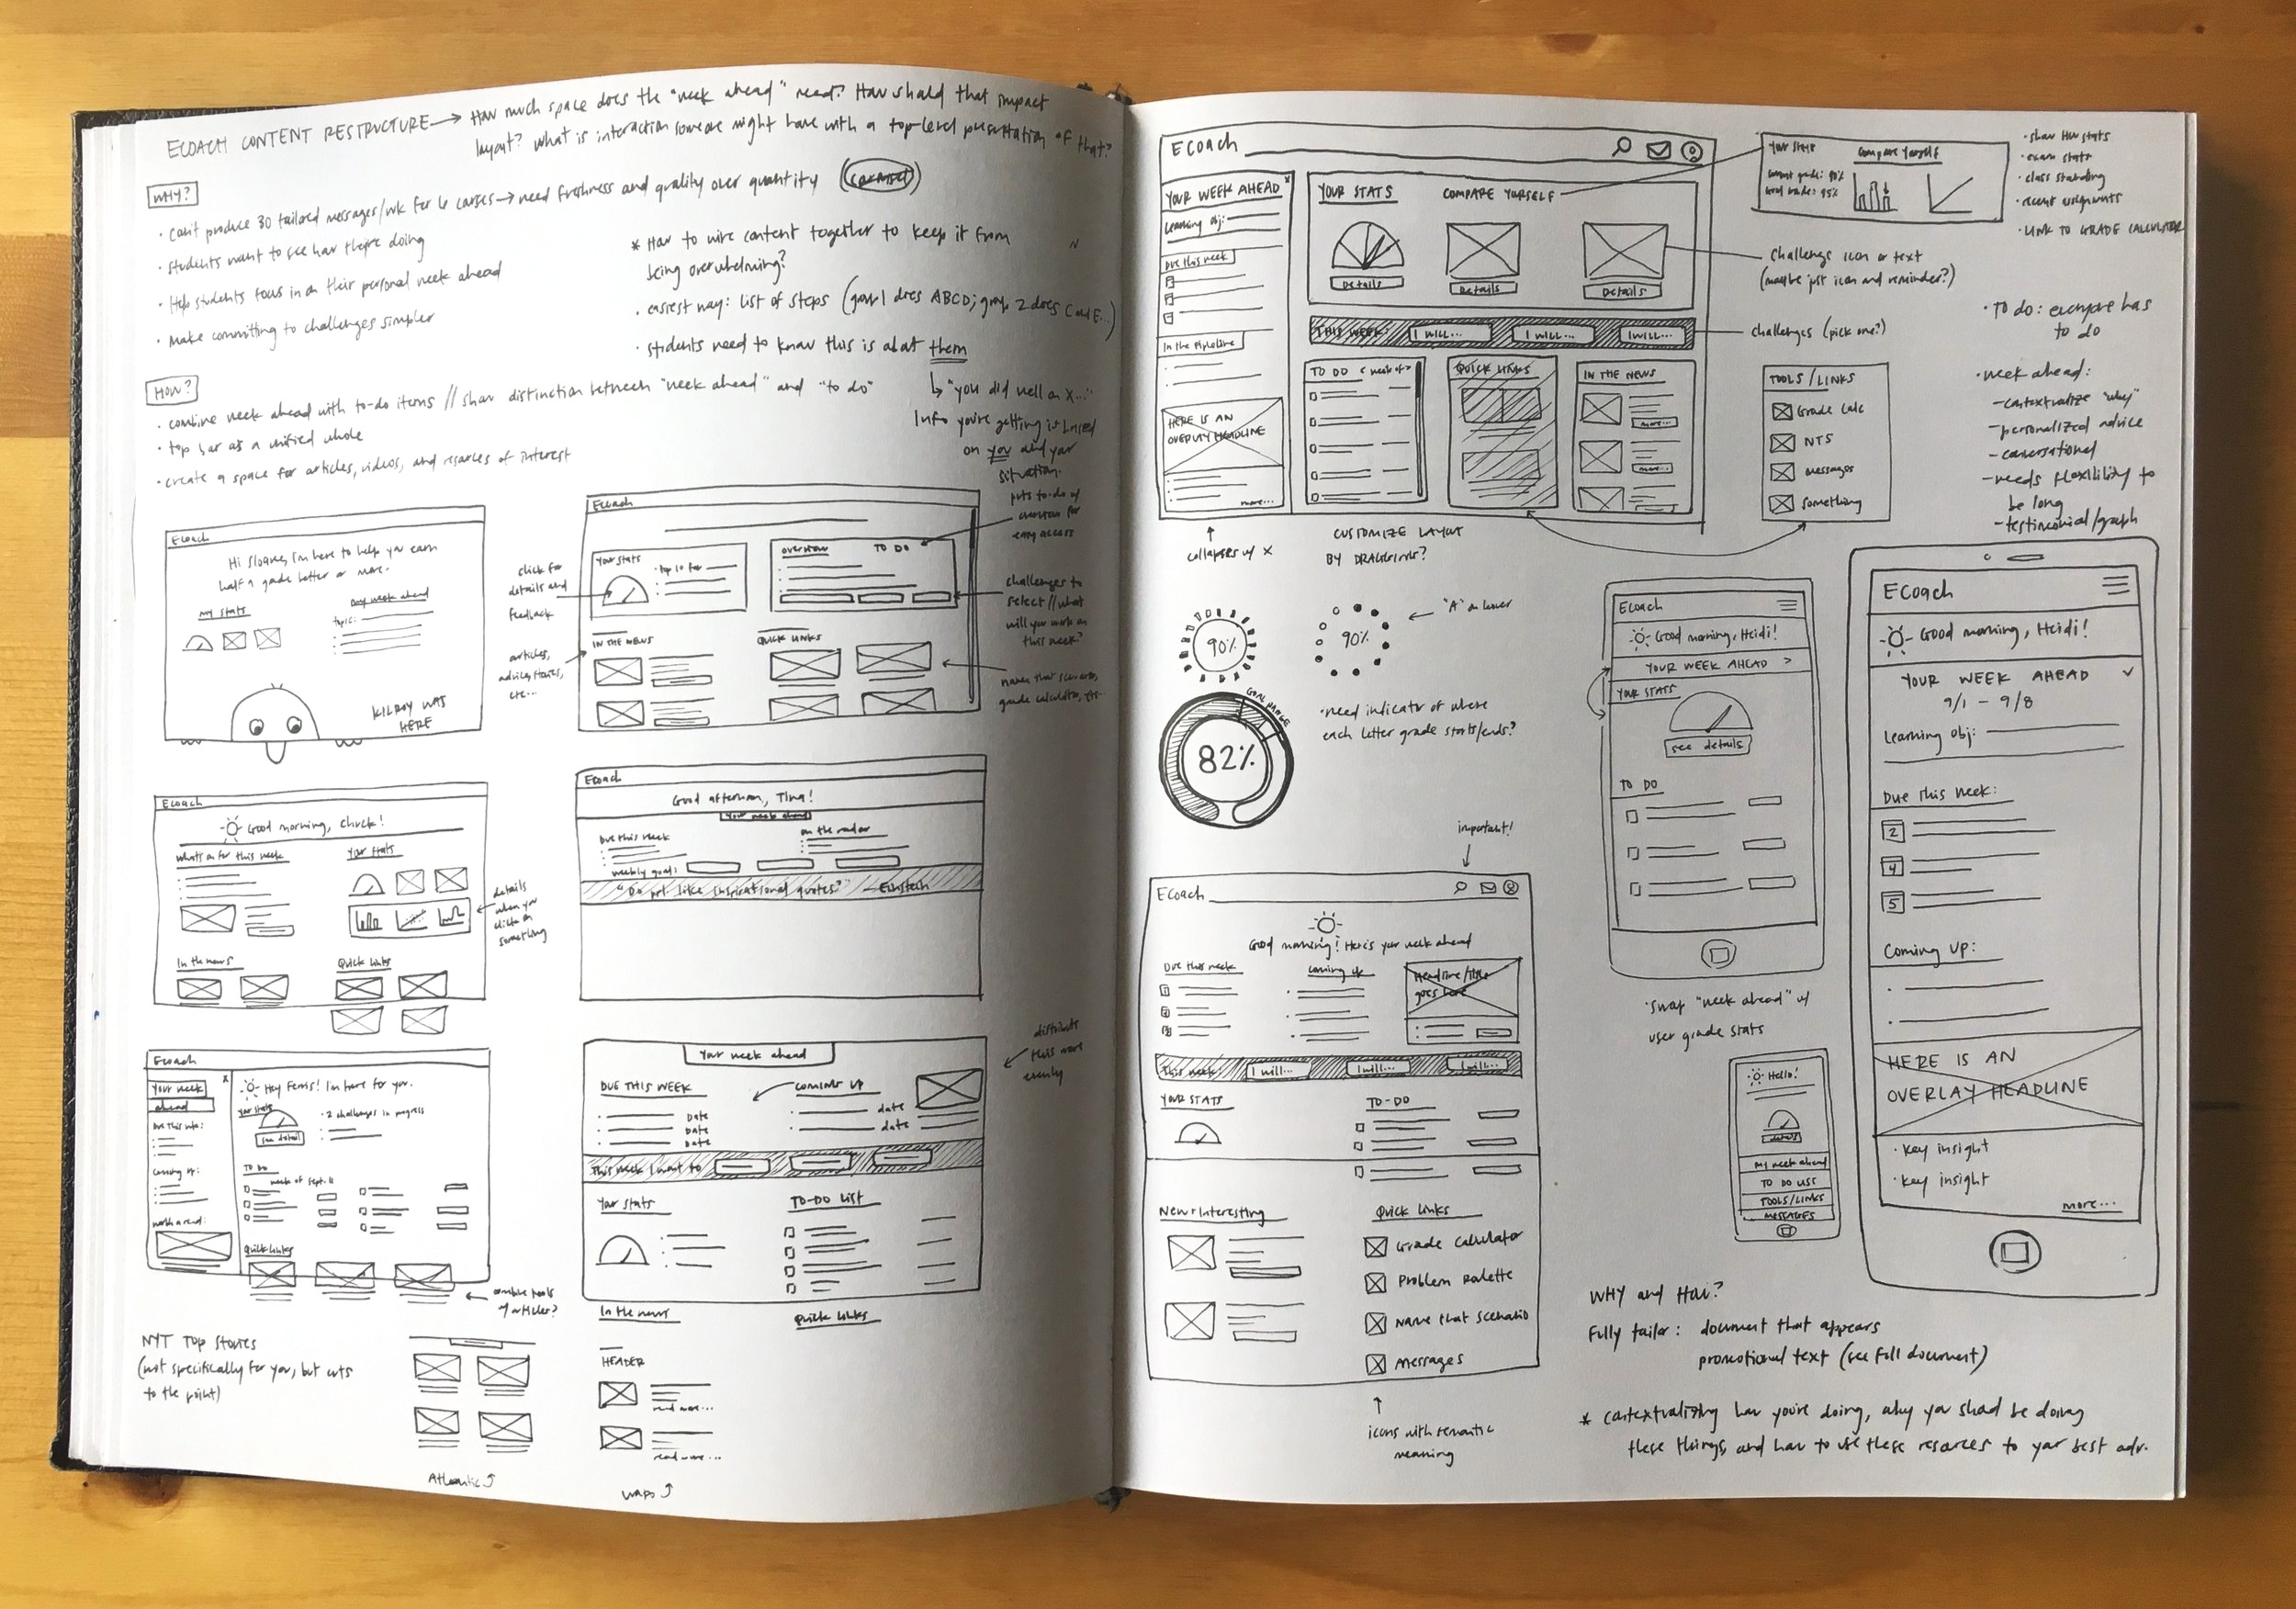 Early sketches of the redesigned Course Coach homepage. I filled the better part of two sketchbooks over the course of this redesign, making note of questions and scrawling rough ideas as I went. I discussed each iteration with the lead software developer to discuss implementation and stress test the designs.